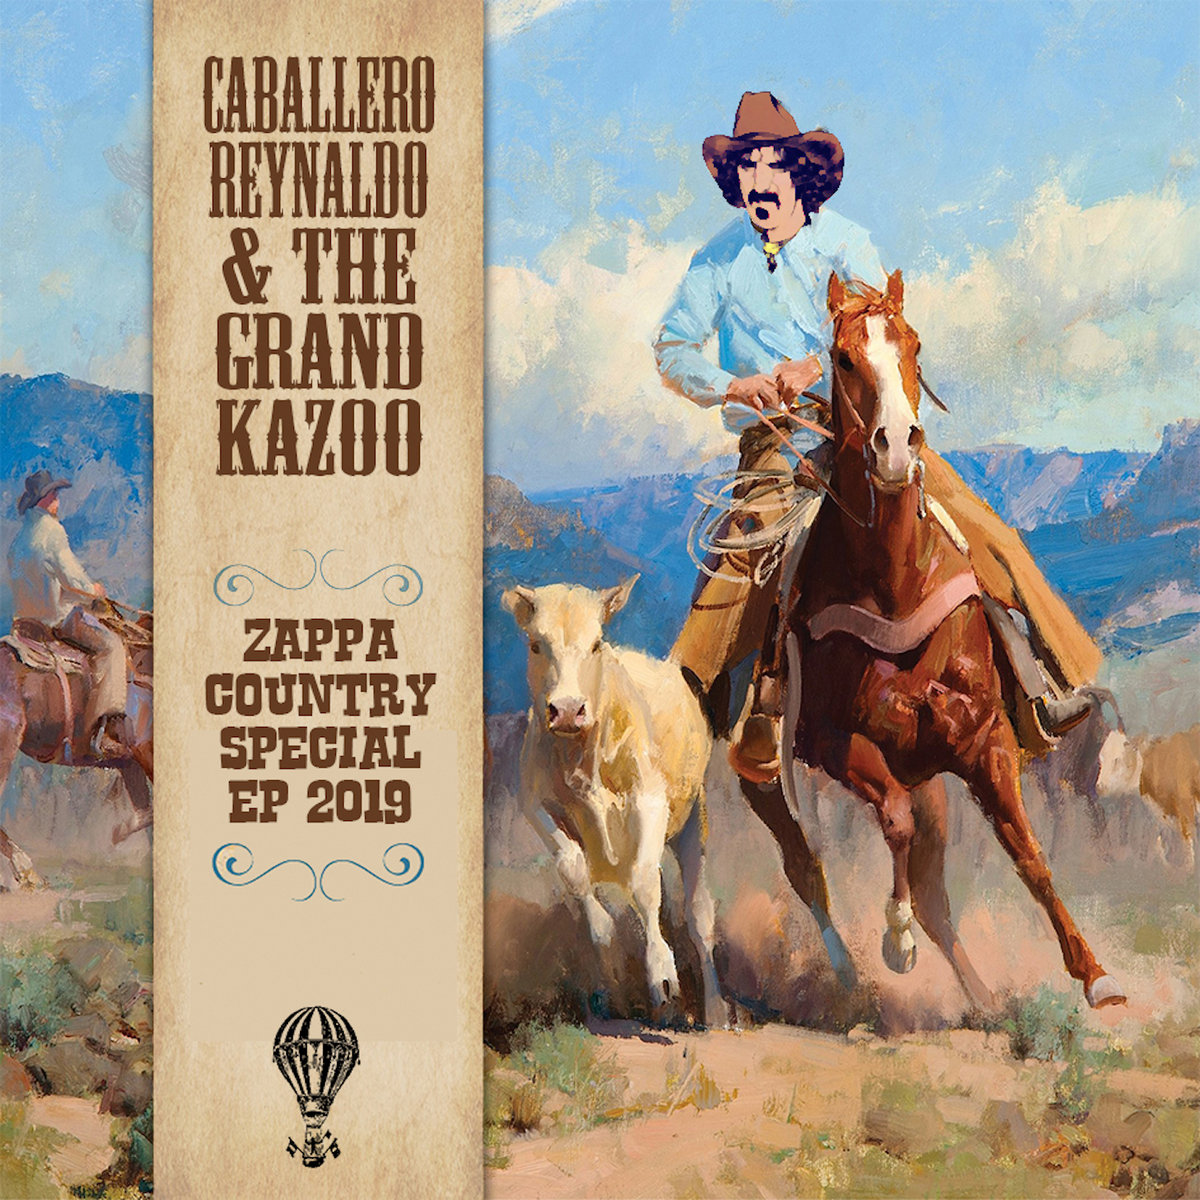 Zappa Country Special EP